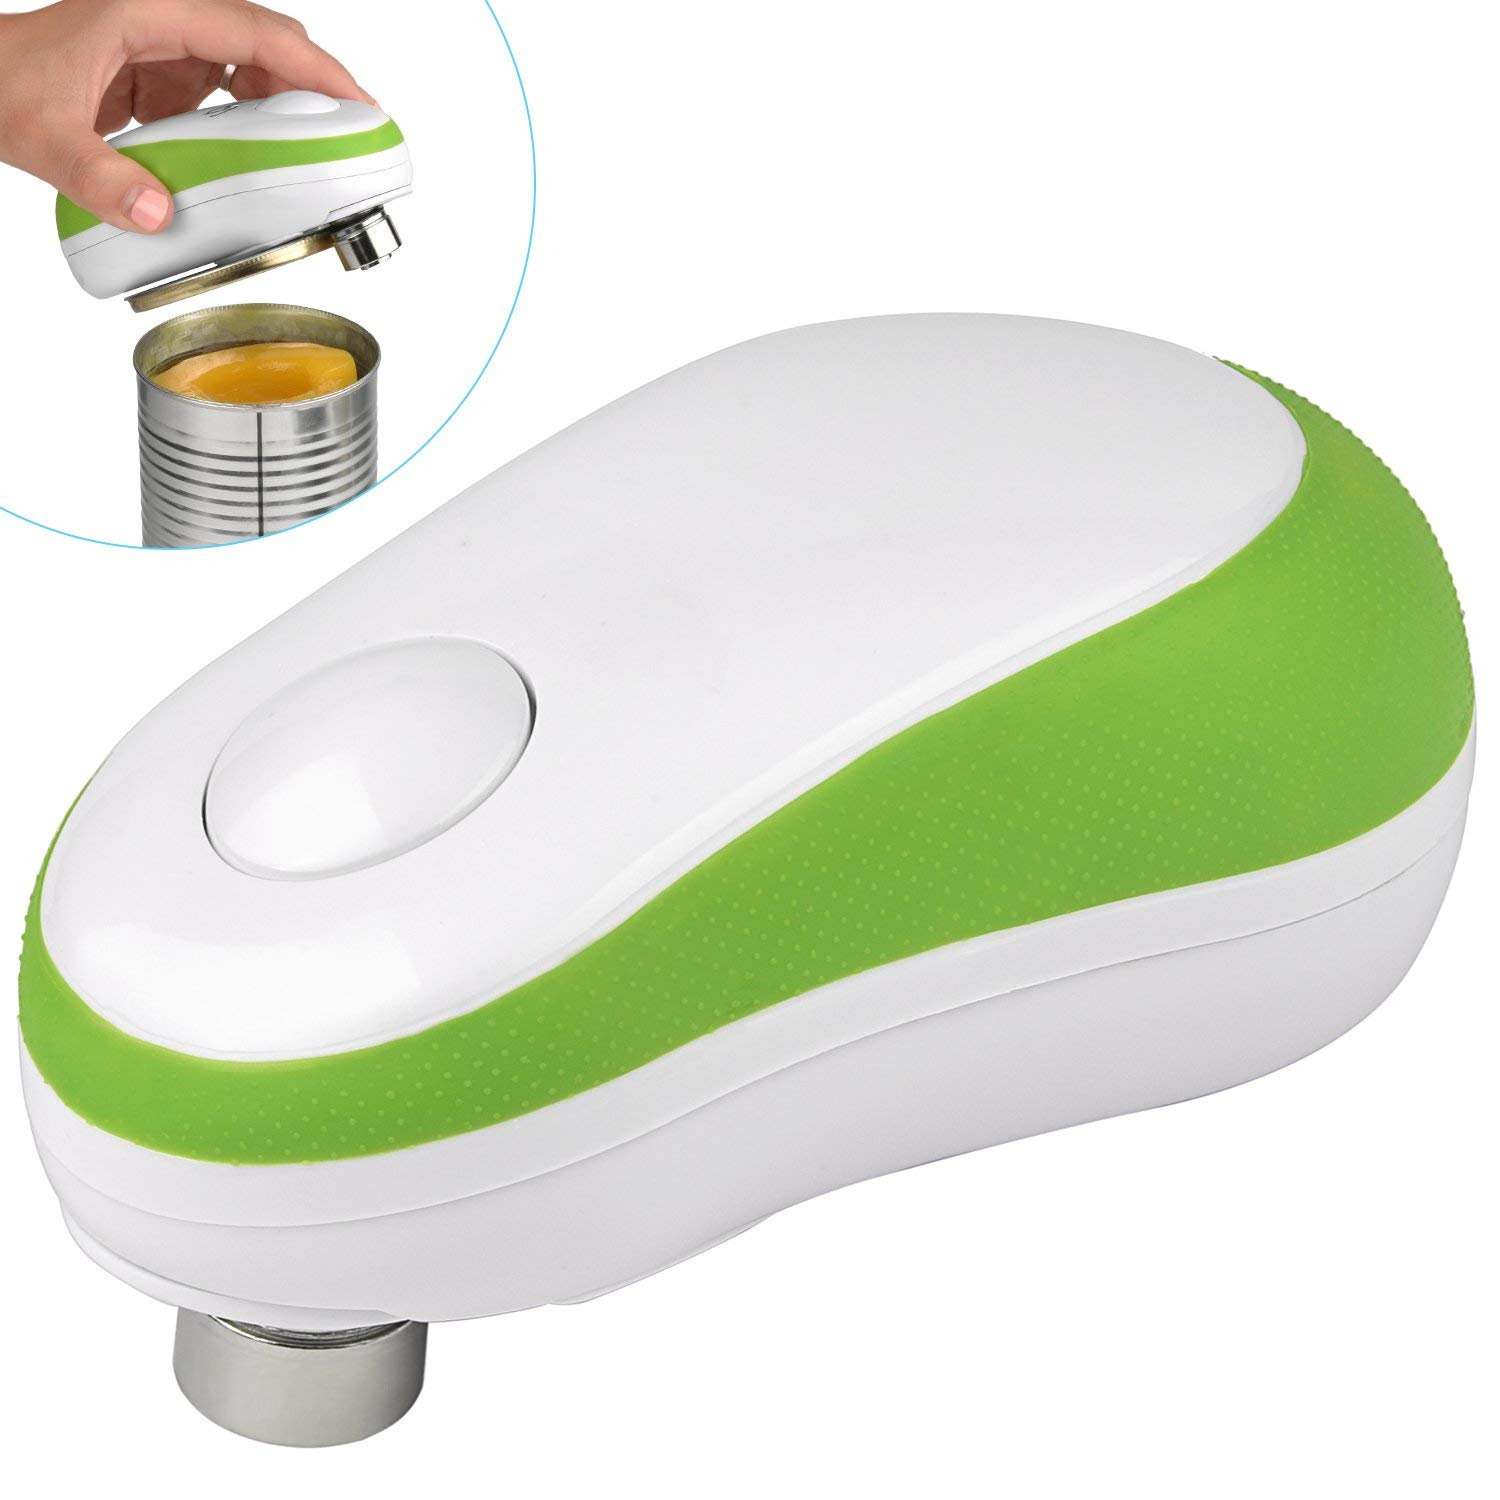 Electric Can Opener, Starew Automatic Can Opener, Restaurant can opener,One Button Start & Auto Stop, Safety Tin Opener with Smooth Edge Left (green)